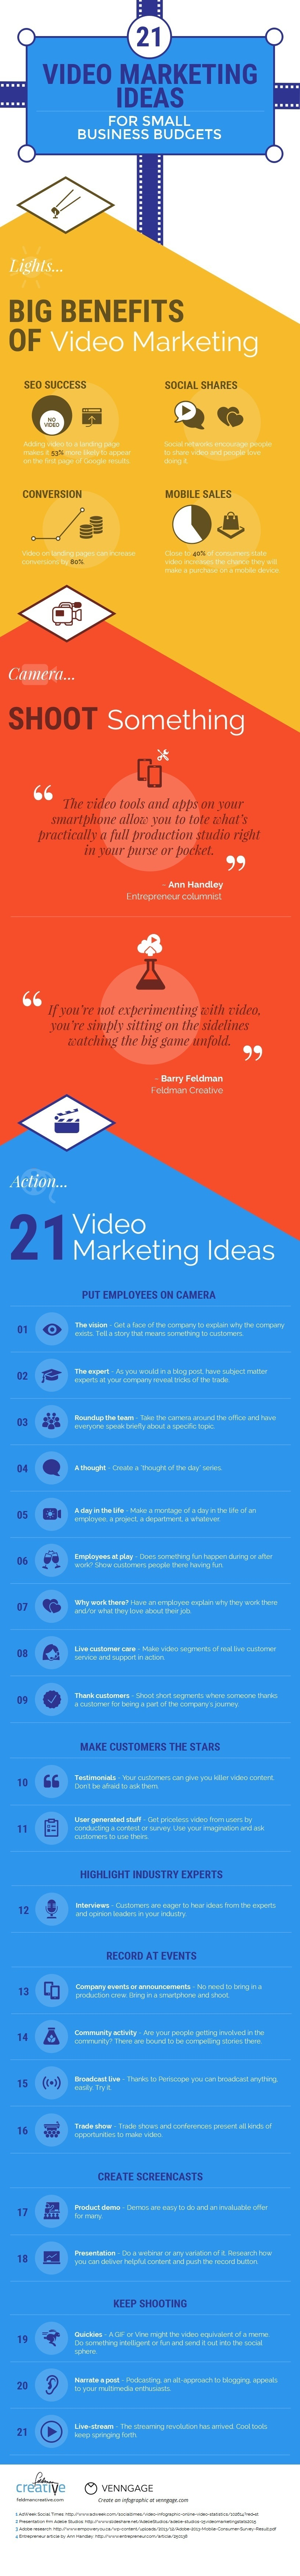 video-marketing-21-tips-need-infographic-compressed.jpg